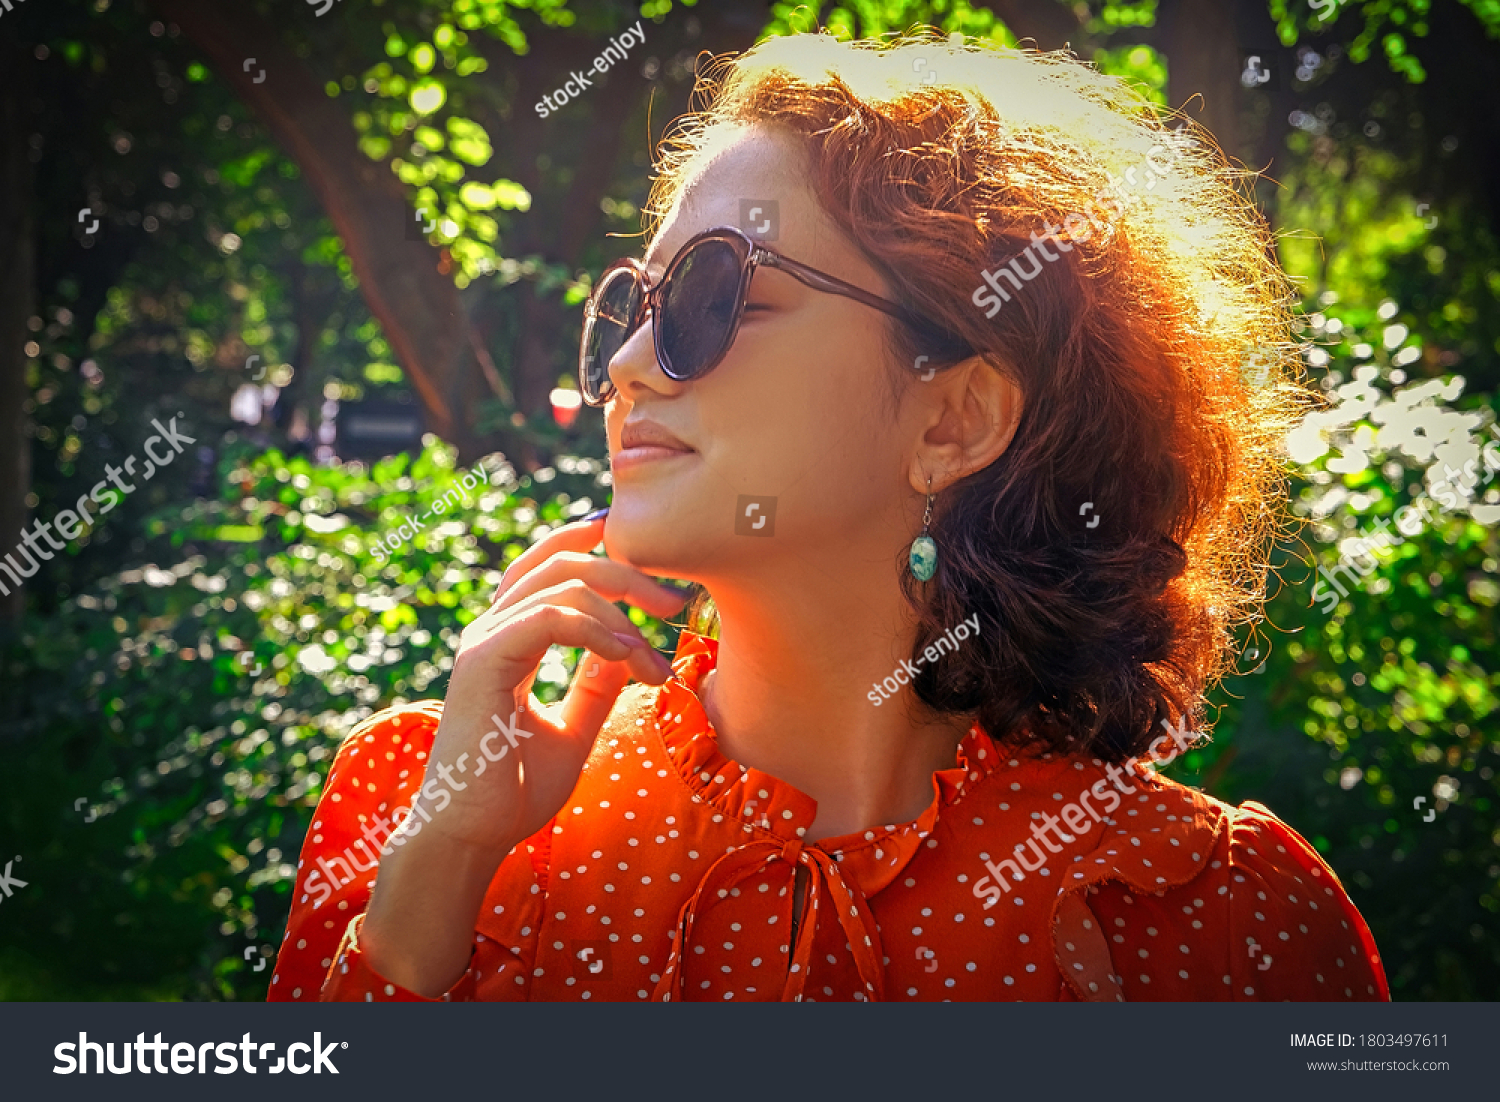 Asian girl in sunglasses looking up closeup of the face. She is posing in rays of bright sun in profile.